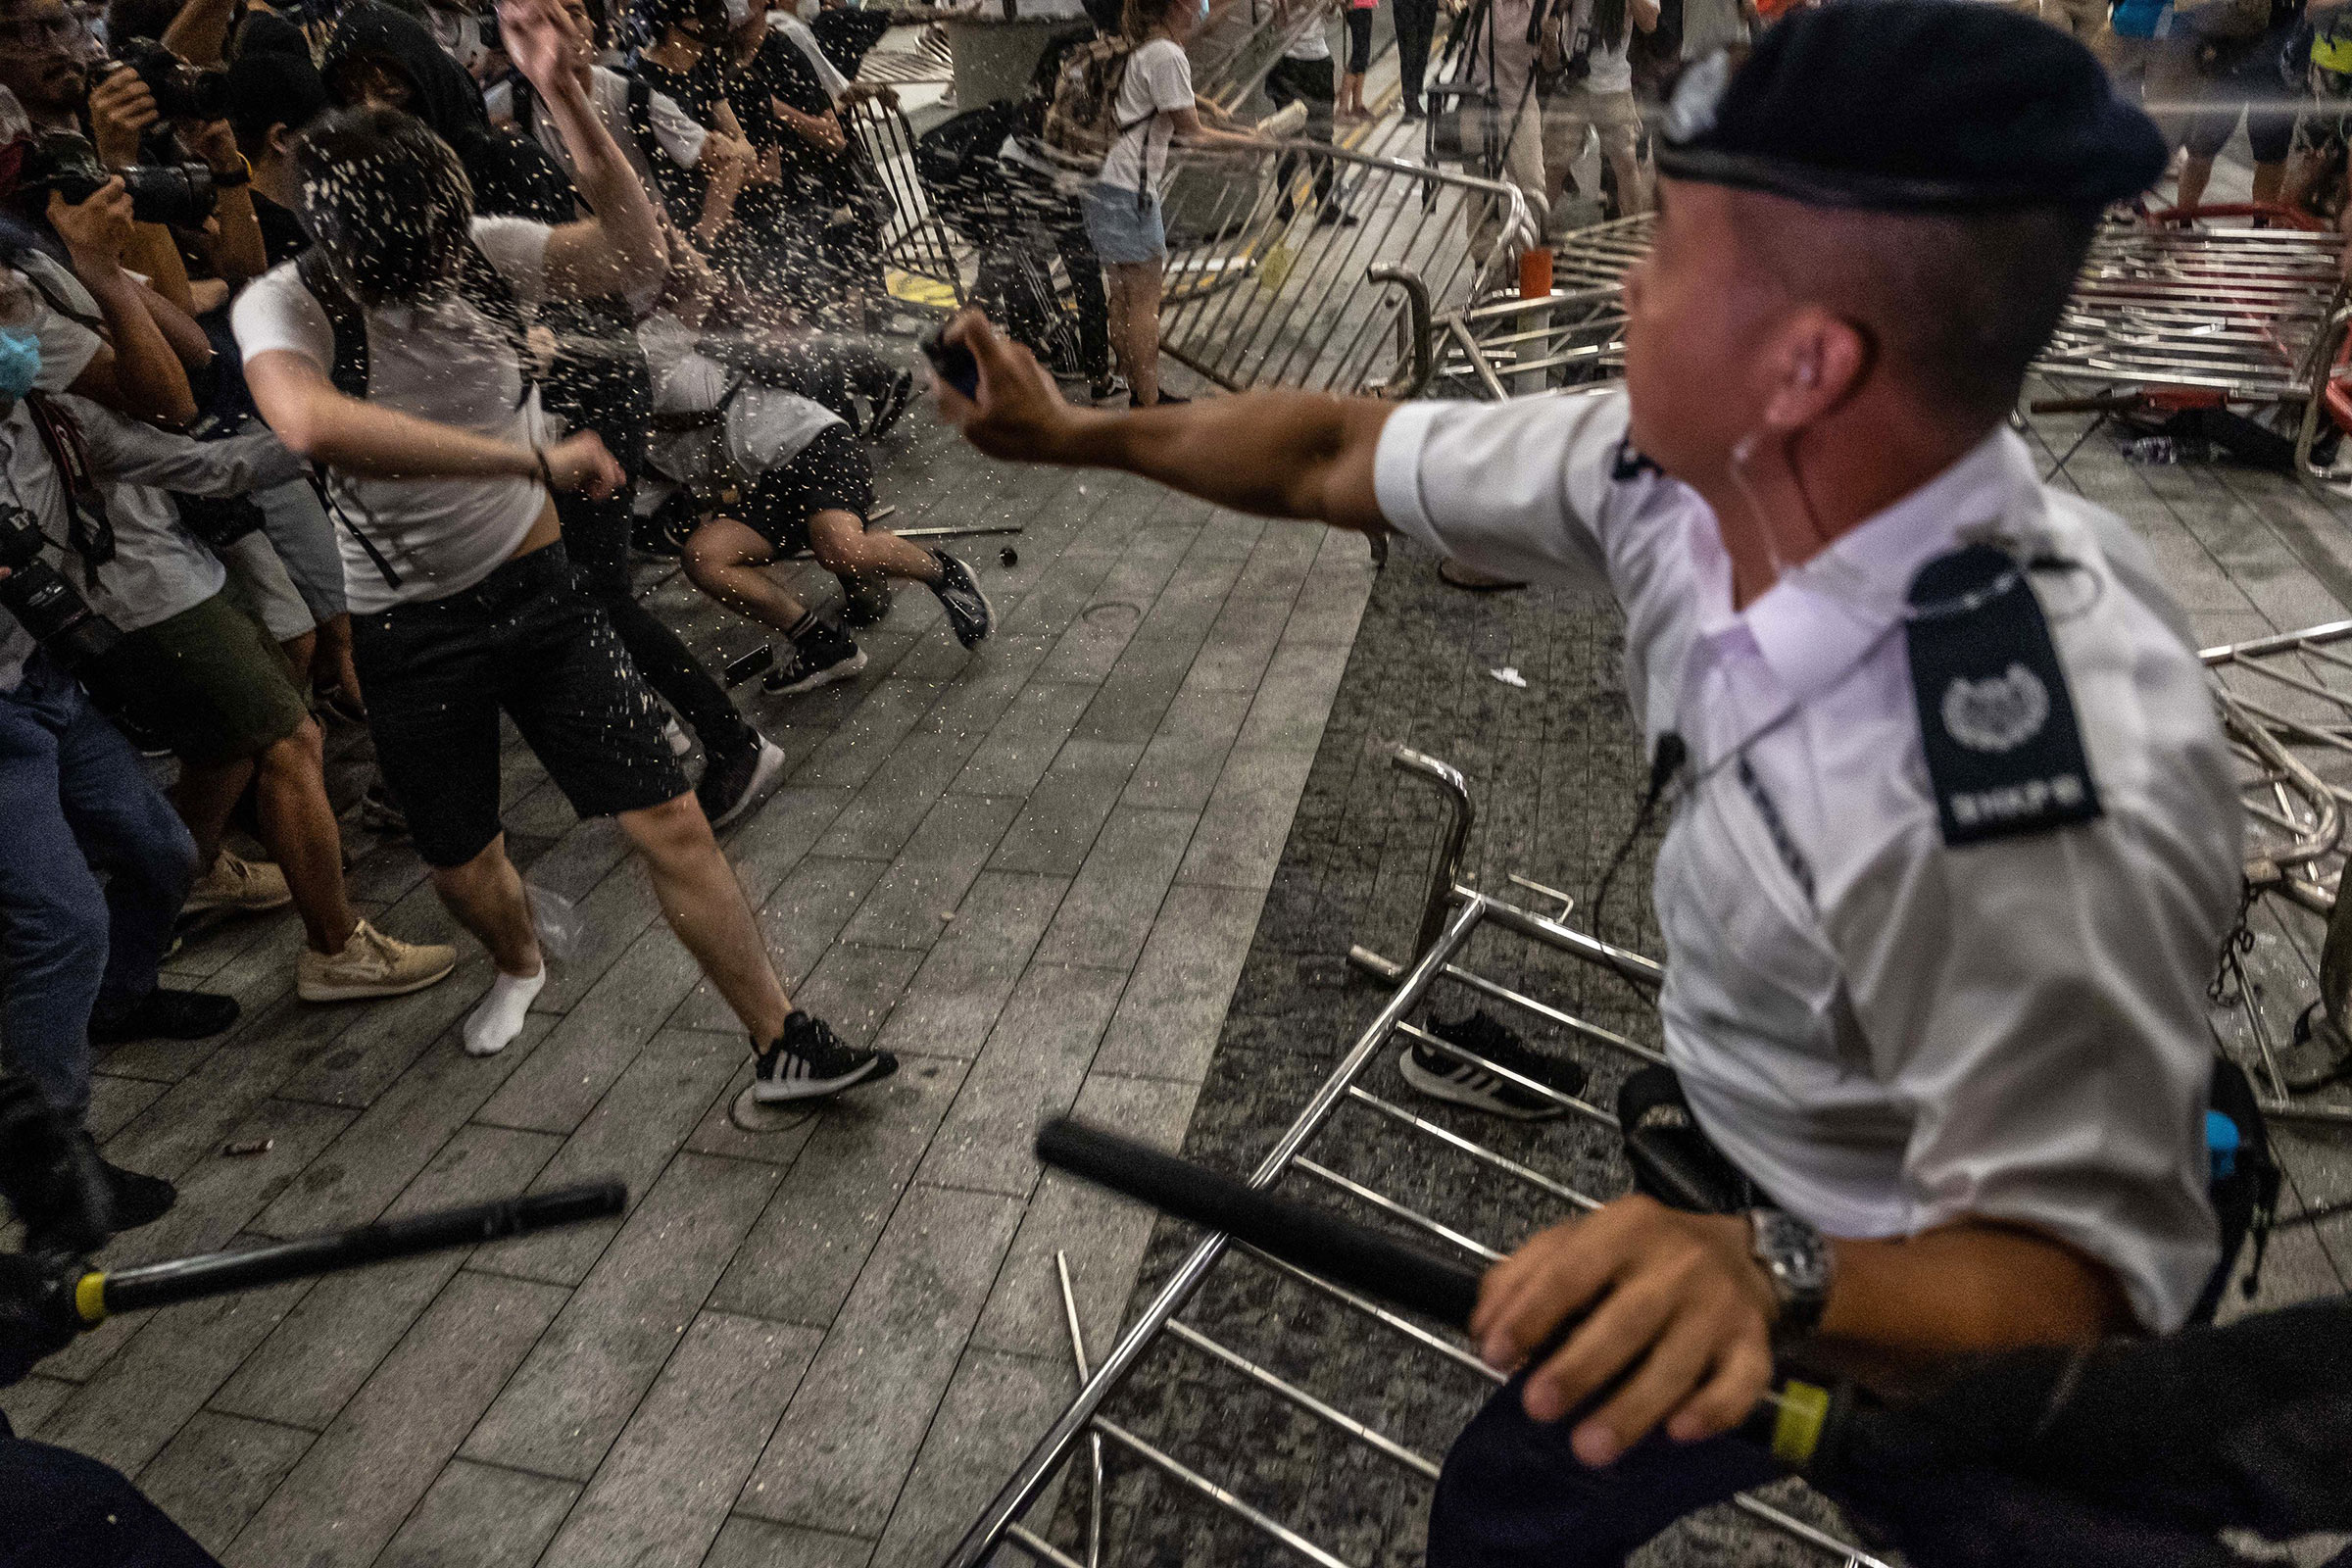 A police officer pepper-sprays demonstrators during a protest against the extradition law proposal on June 10.